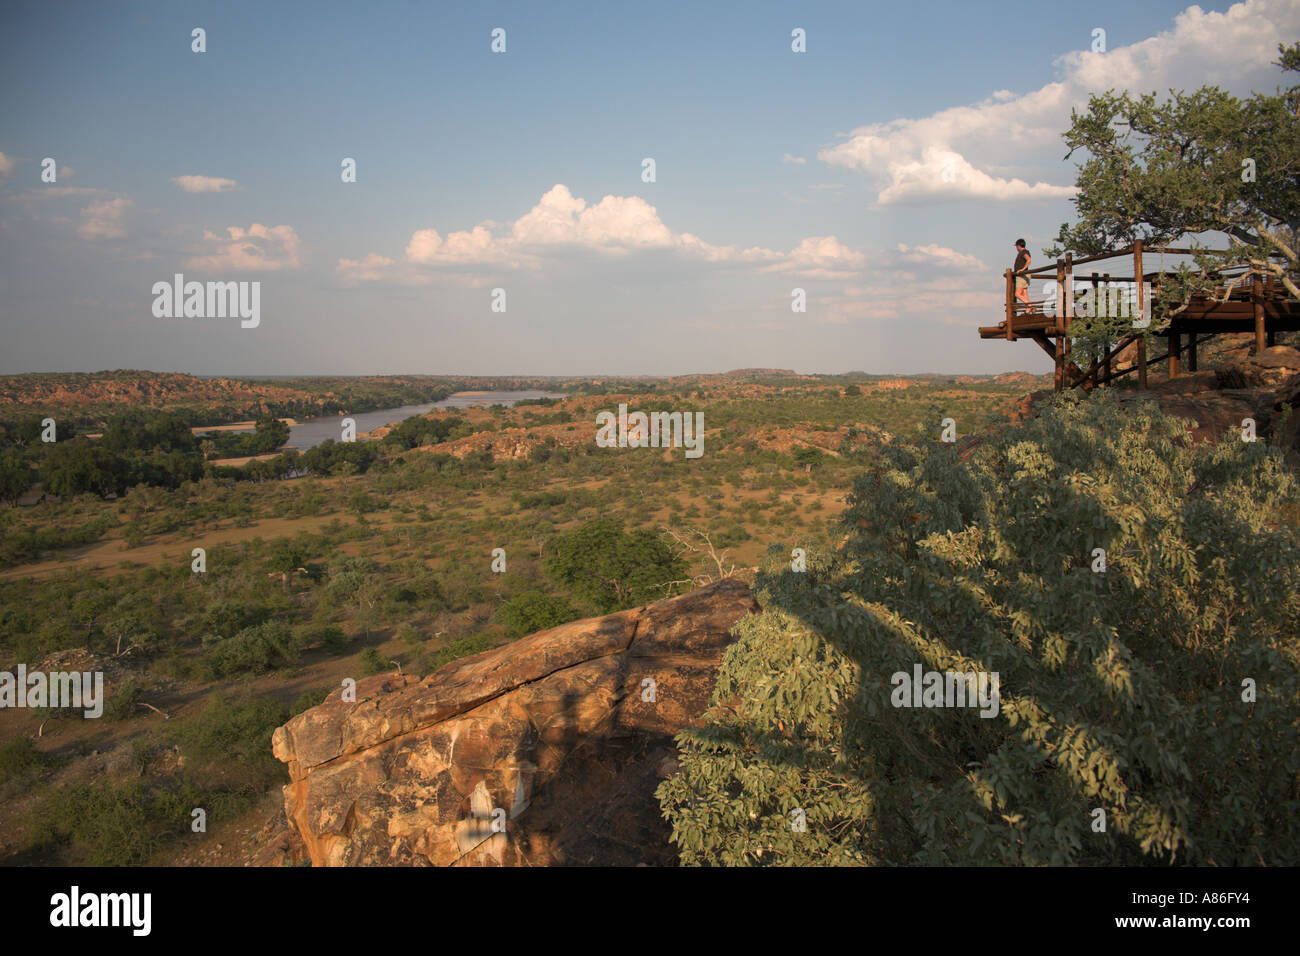 Map Of Africa Viewpoint.Mapungubwe National Park Confluence Viewpoint Overlooking Limpopo